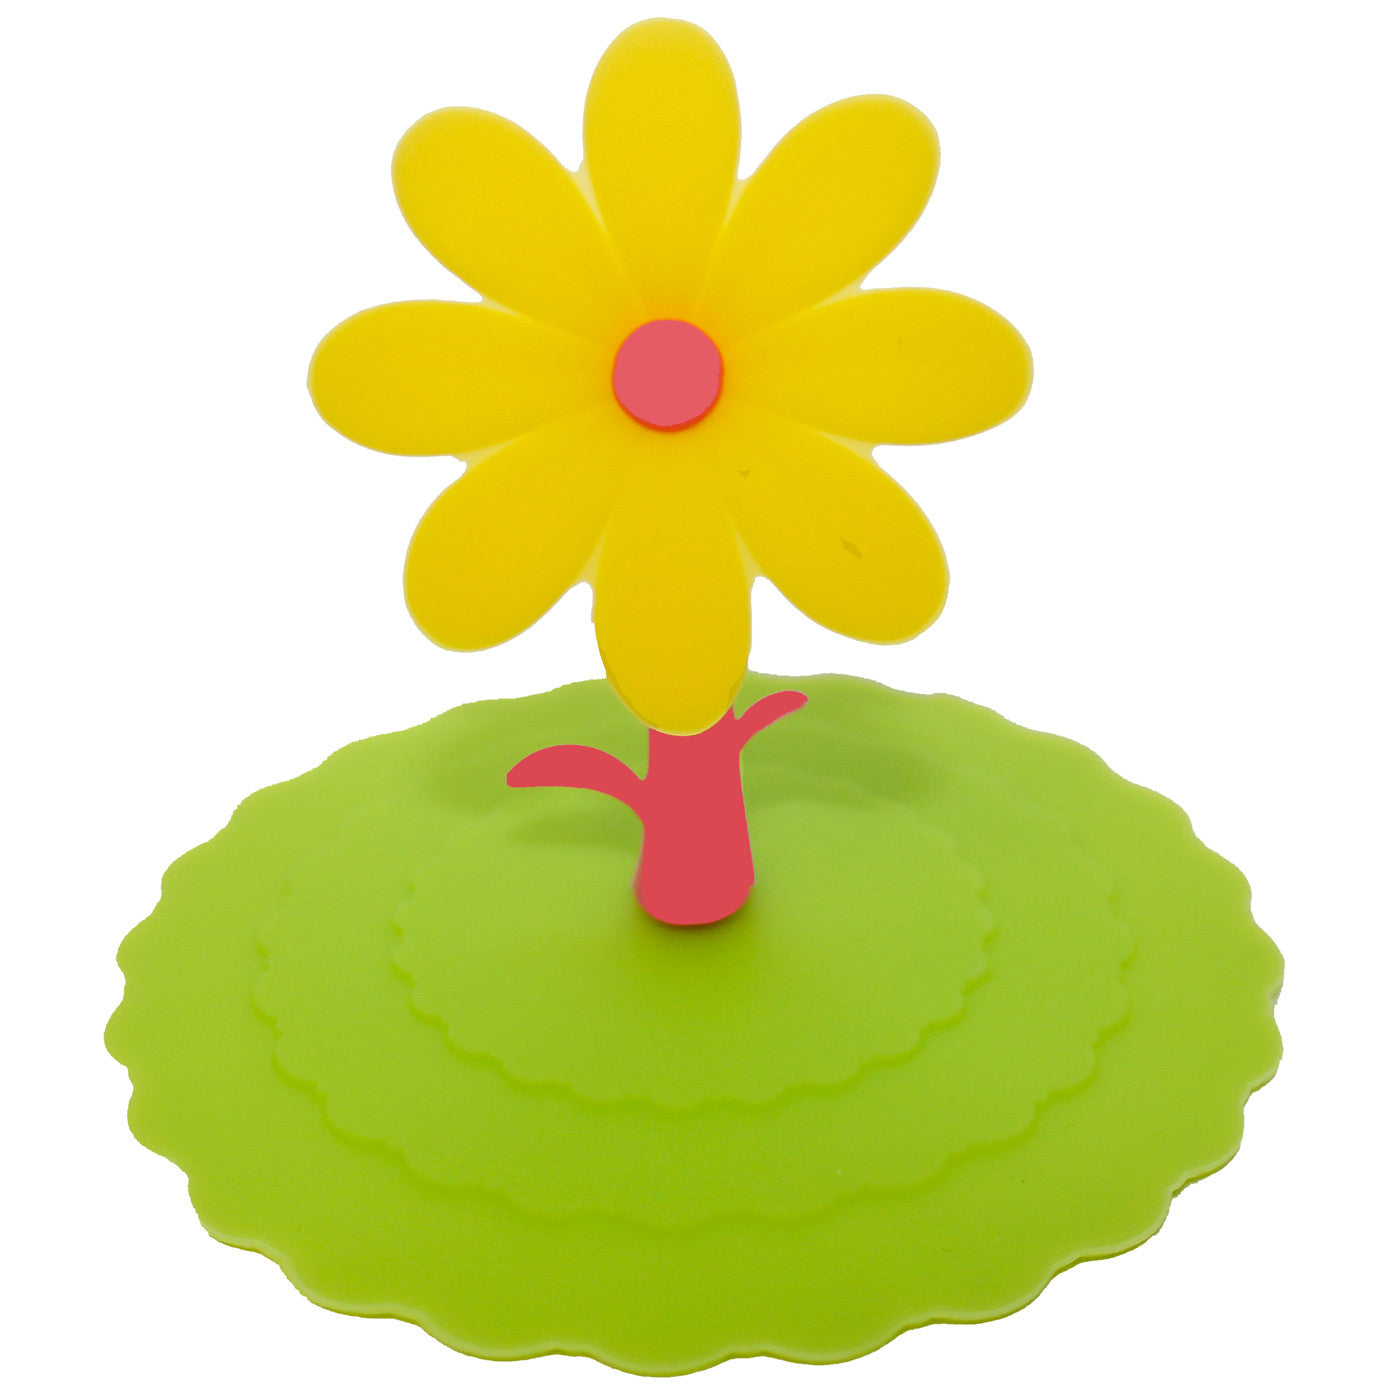 Yellow Flower Suction Cup Lid Mug Cover Ufindings Inc